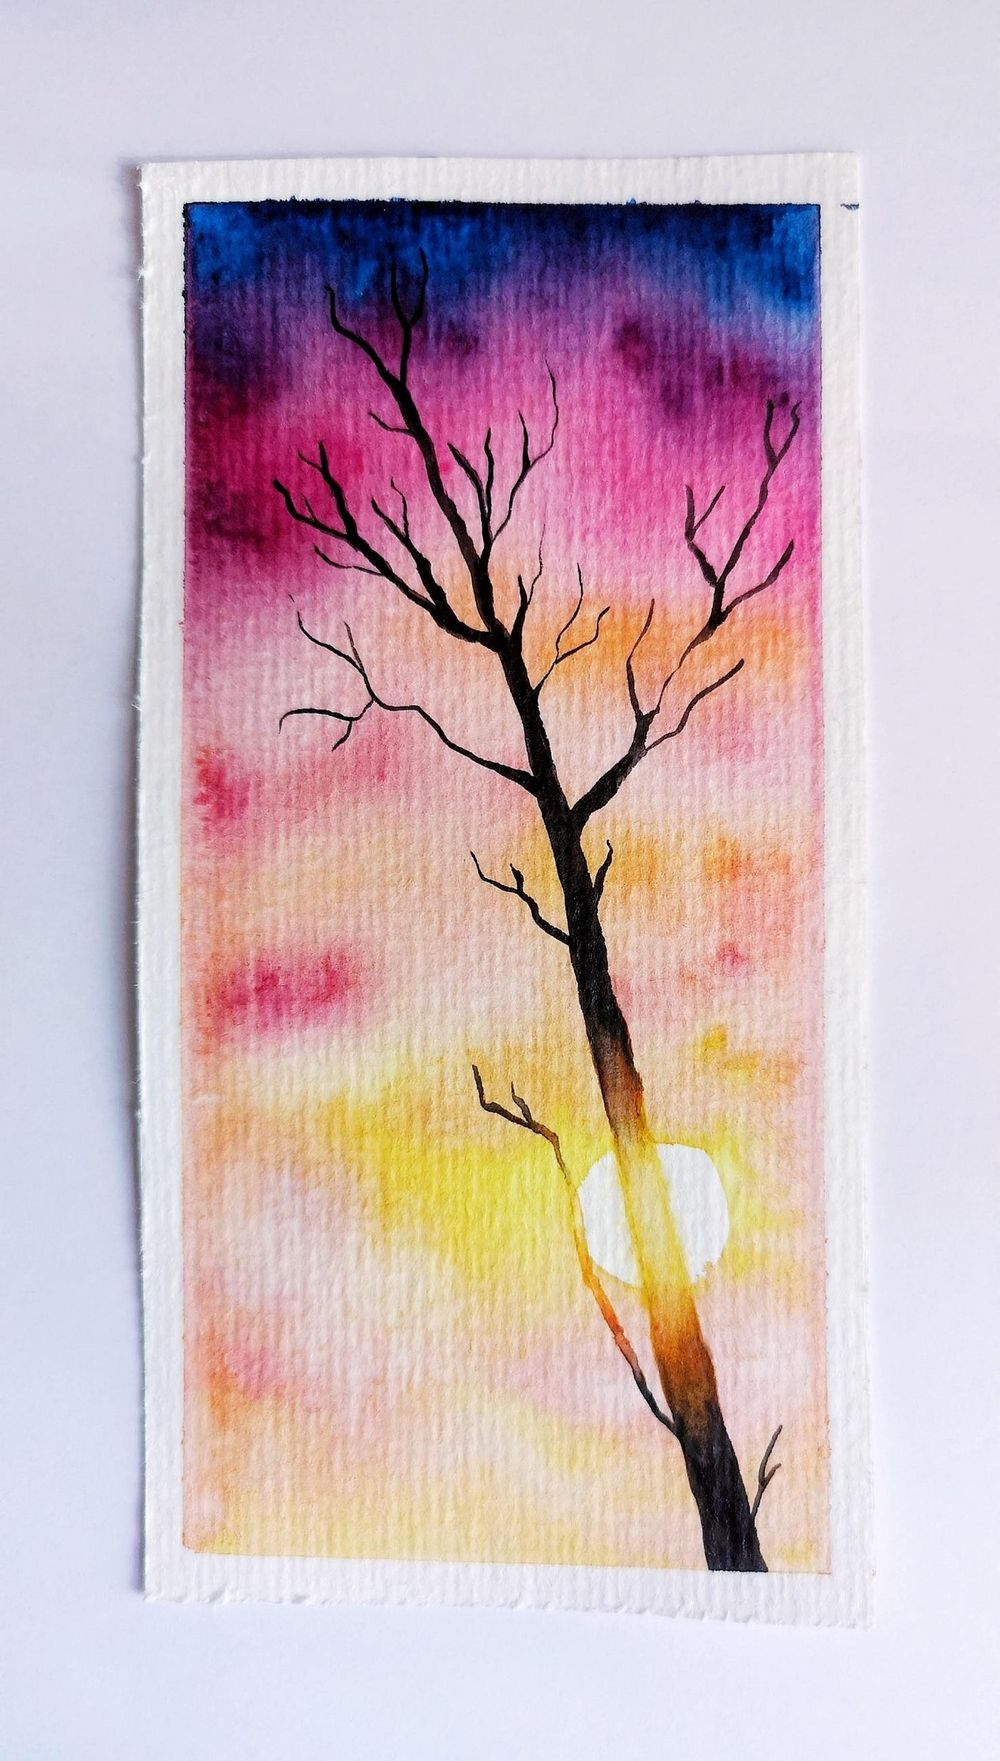 Easy Landscapes - image 4 - student project